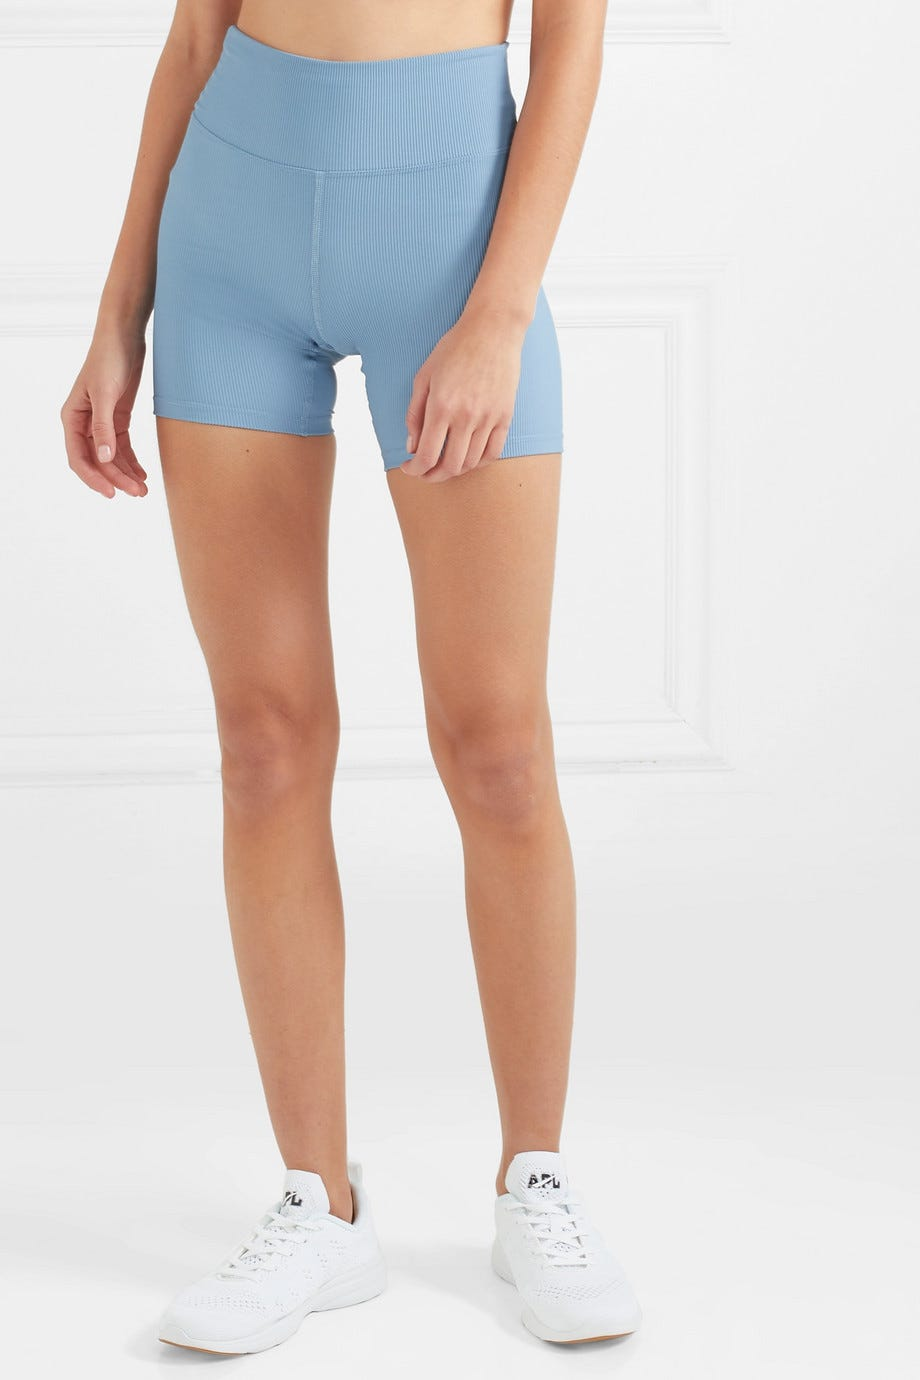 70afe749e46e9 Bike Shorts Trend: How To Style, Best Ones To Buy 2019